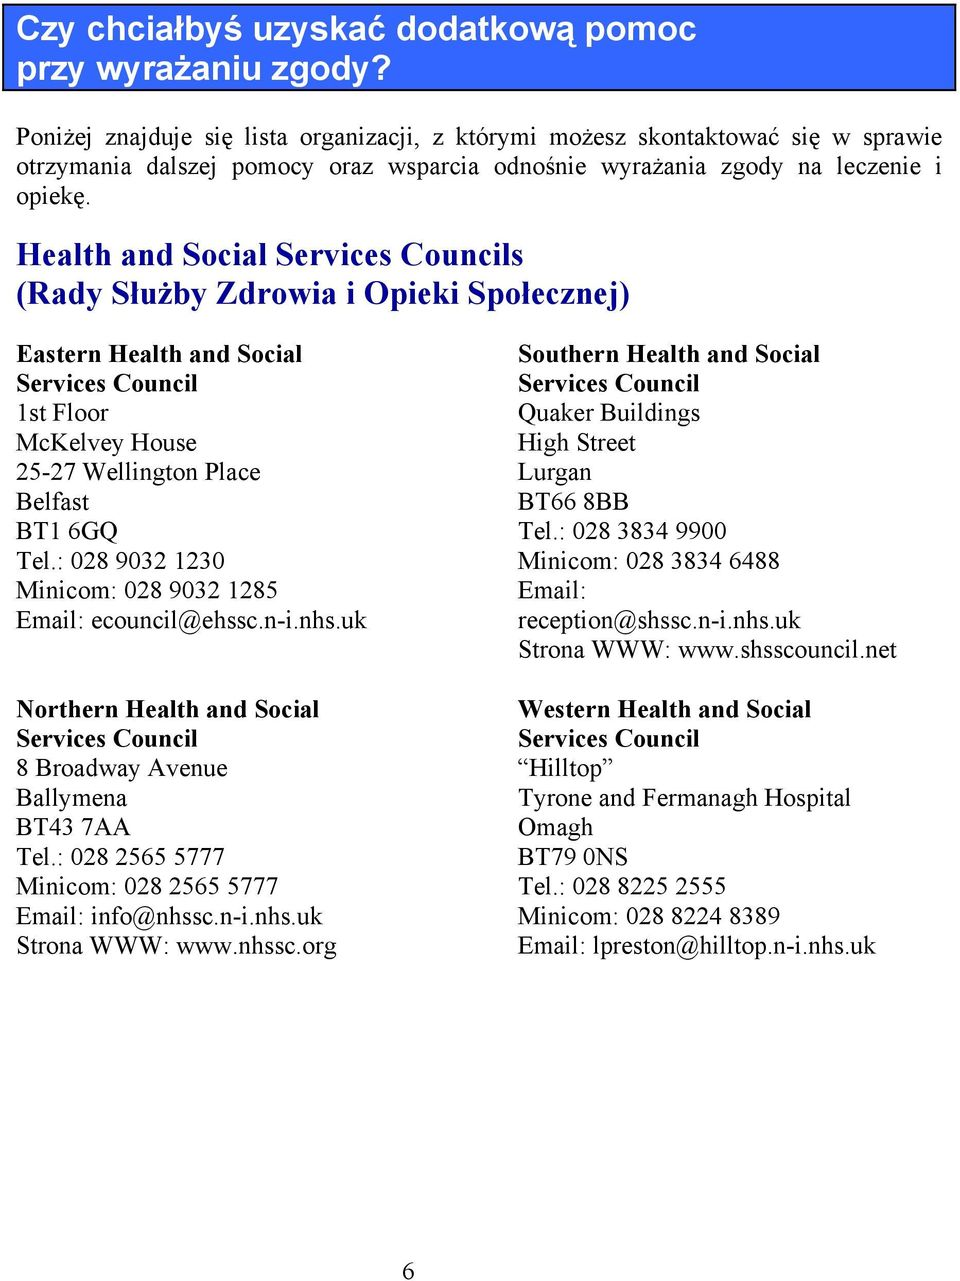 Health and Social Services Councils (Rady Służby Zdrowia i Opieki Społecznej) Eastern Health and Social Services Council 1st Floor McKelvey House 25-27 Wellington Place Belfast BT1 6GQ Tel.